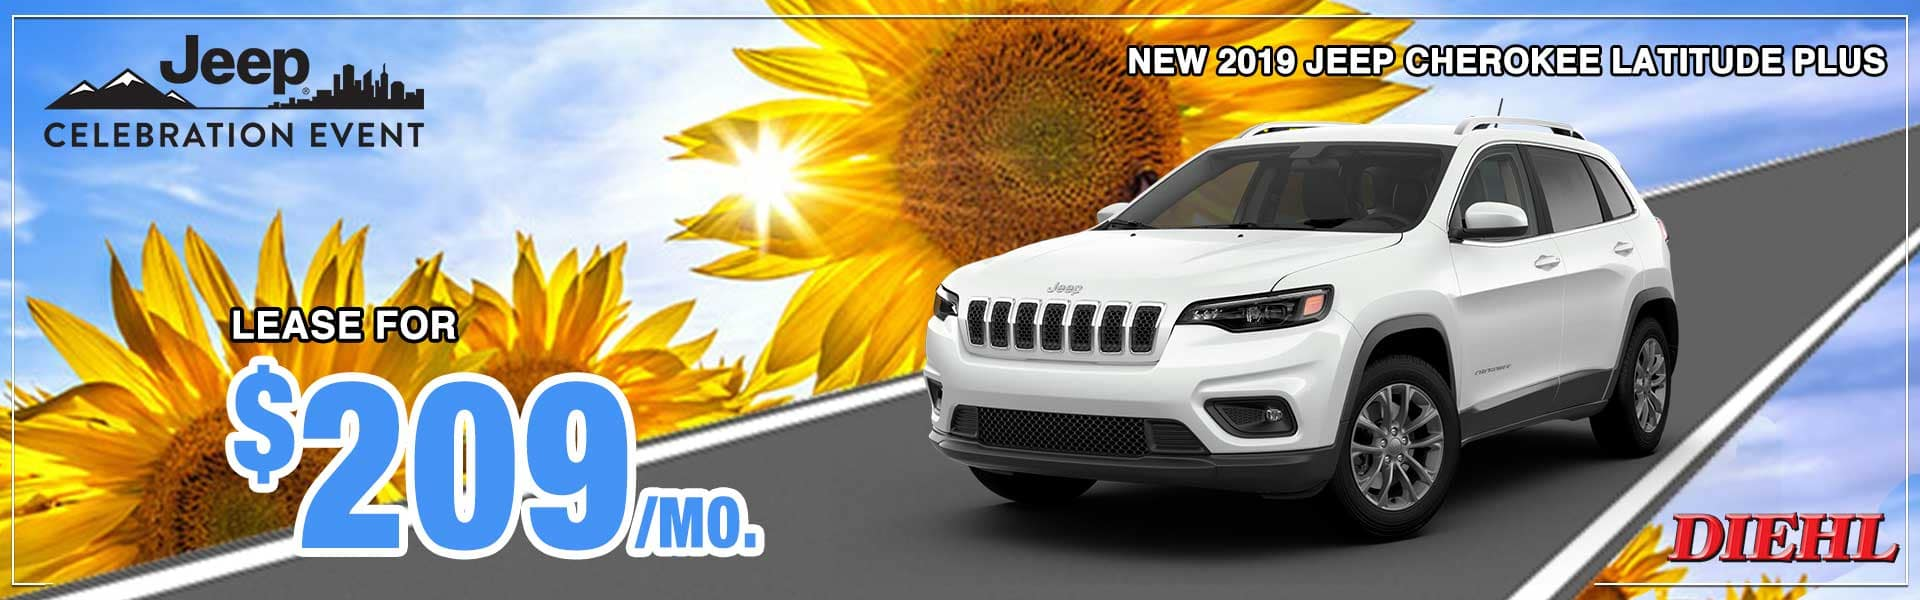 Chrysler Pacifica Blockbuster Sales Event Jeep Celebration Event Dodge Performance Days Bigger Things Sales Event 4th of July Sales Event diehl auto new vehicle special diehl of salem jeep special lease special